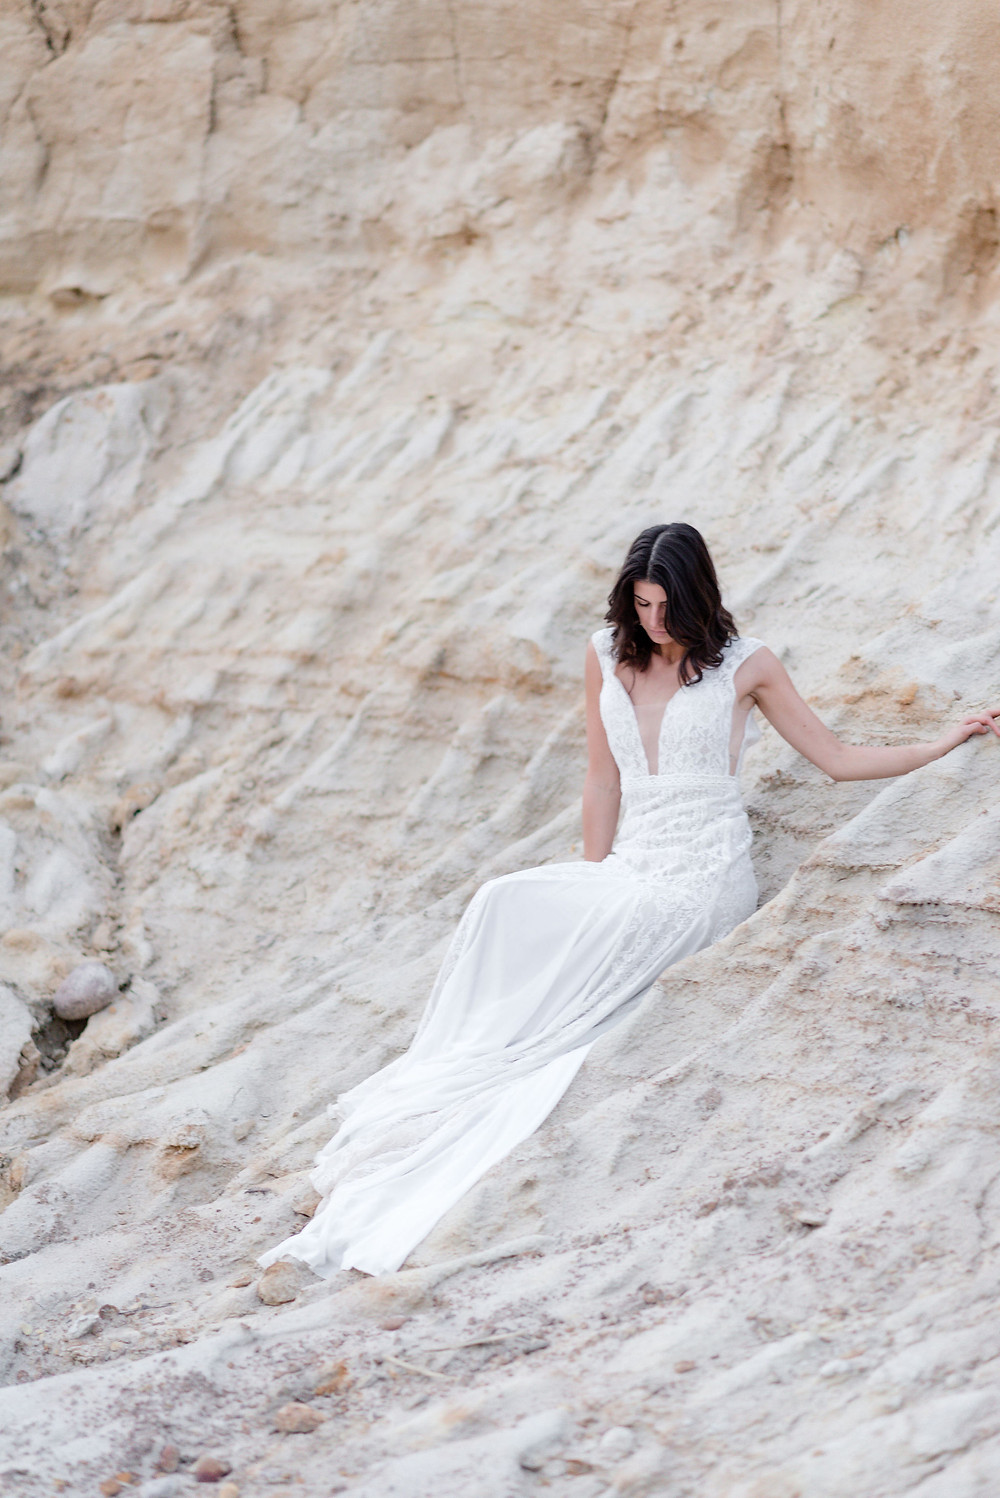 girl wearing wedding dress sitting in sand dune